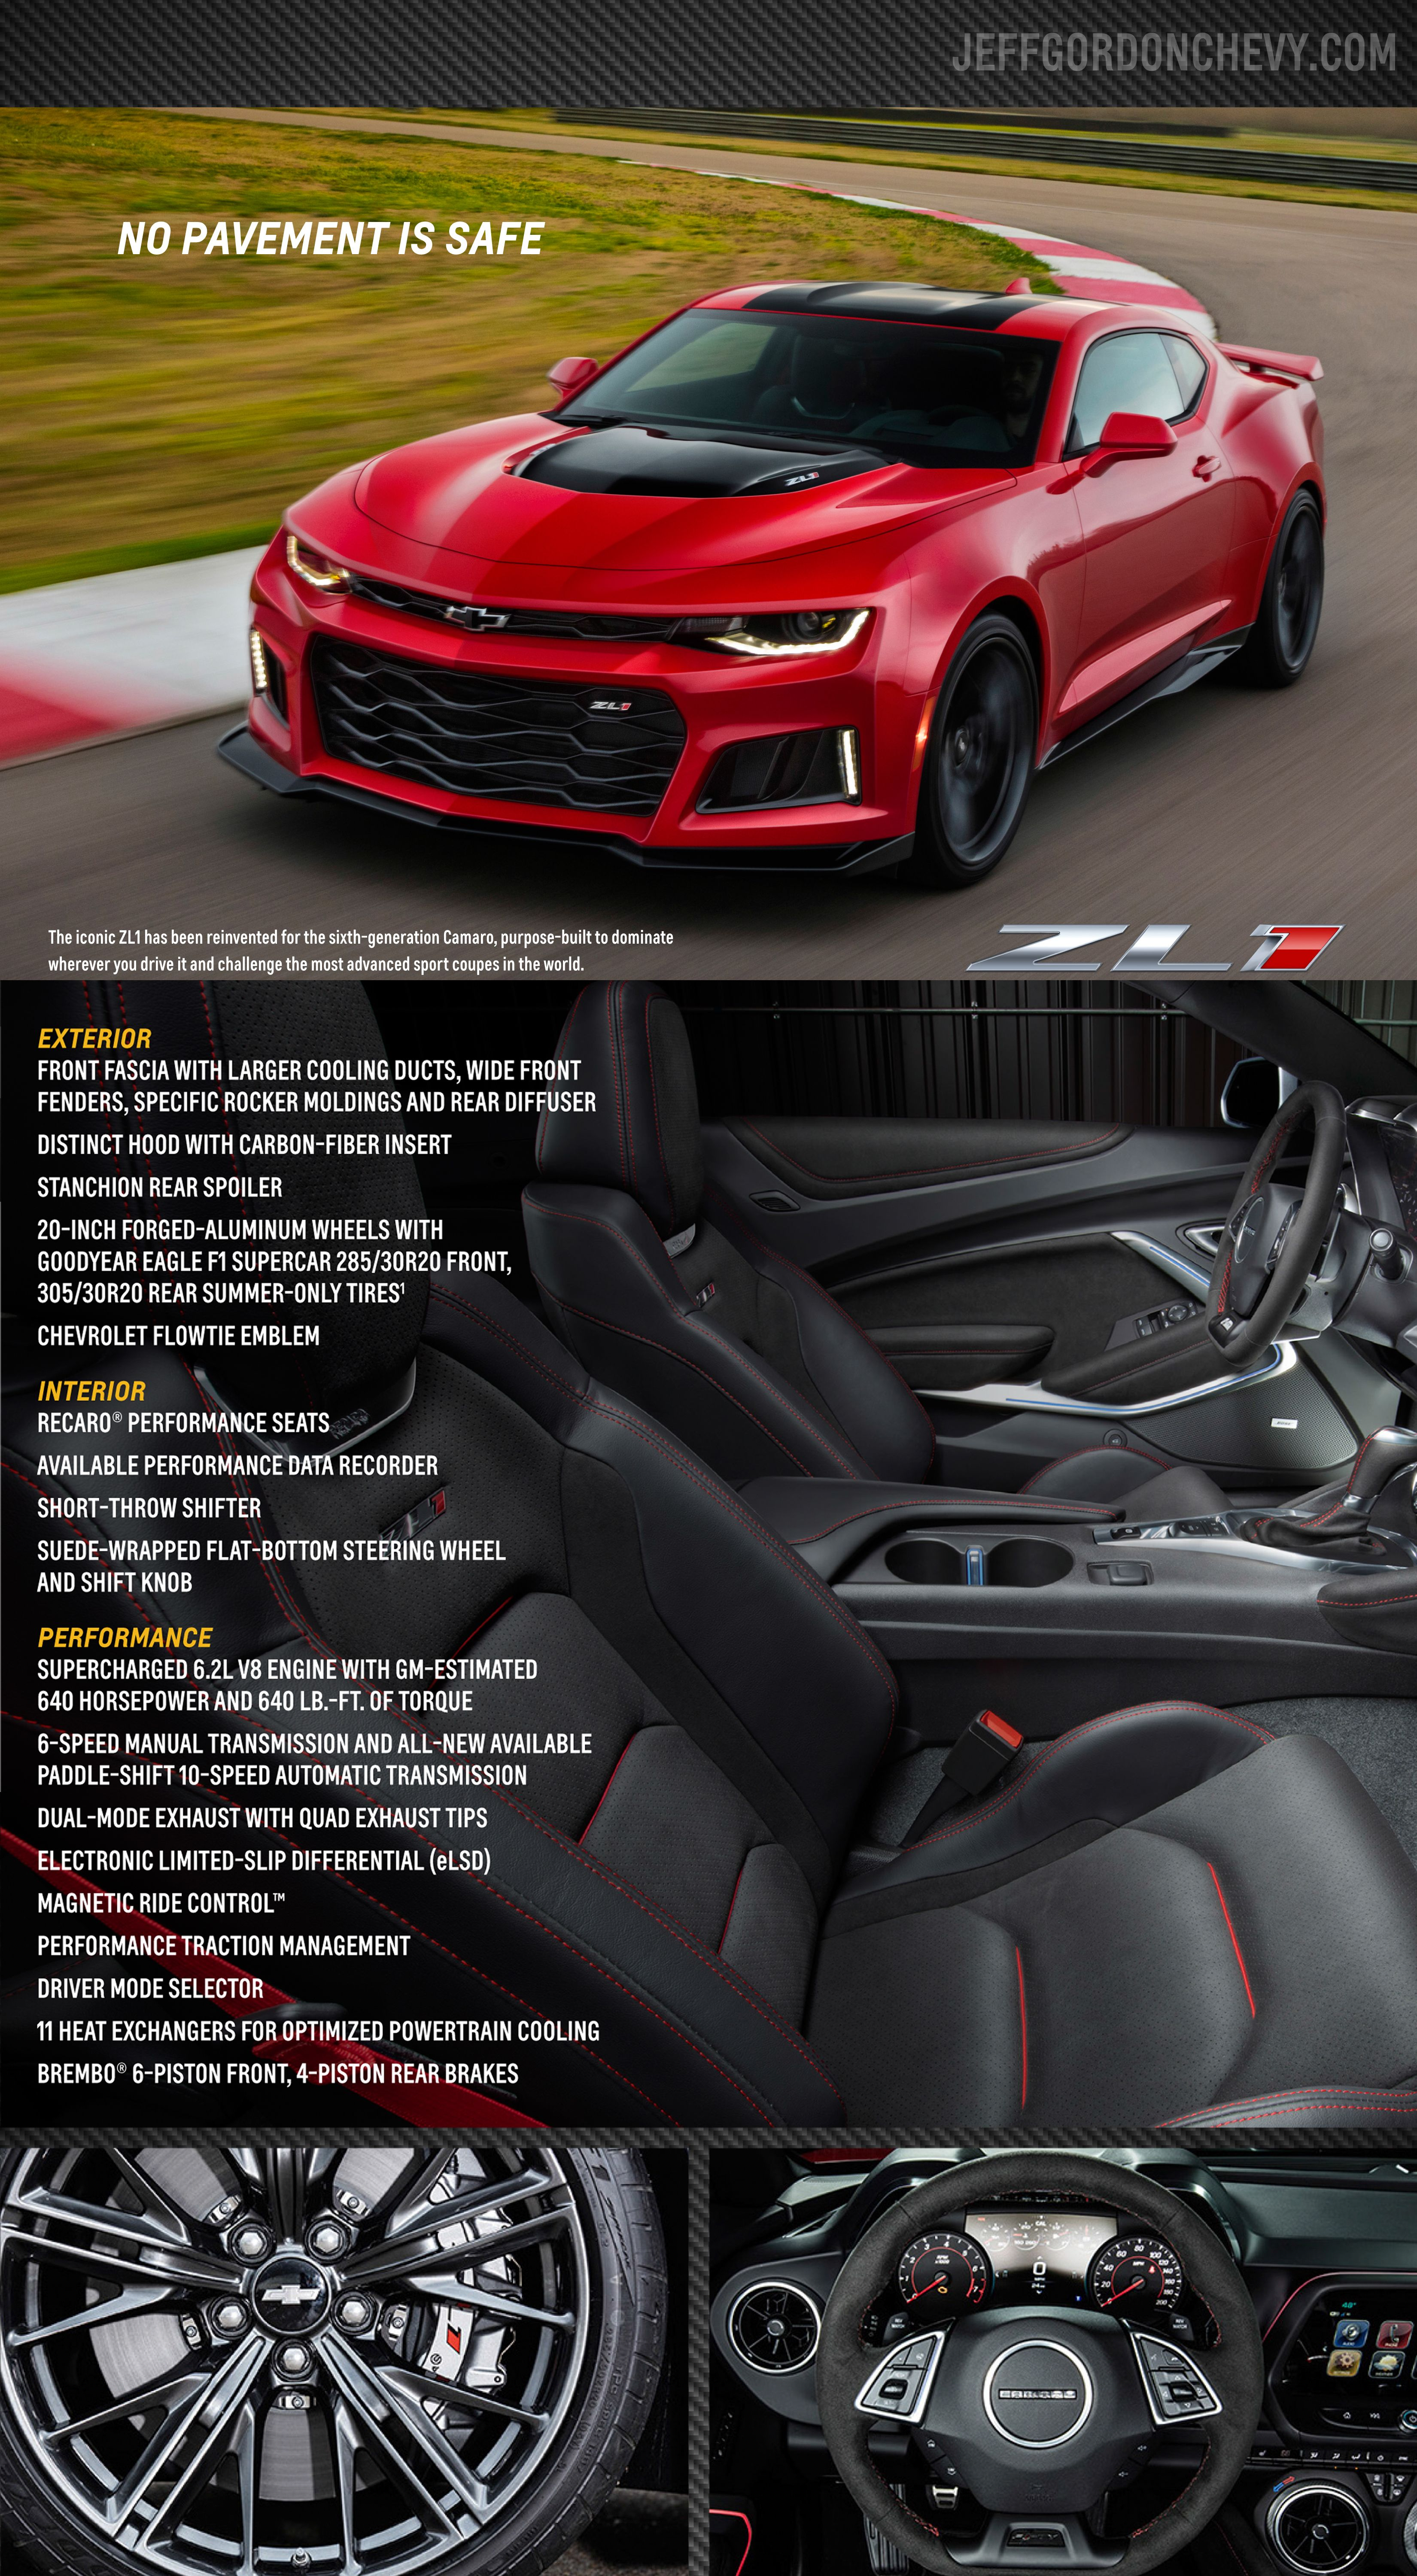 The 2017 Chevy Camaro Zl1 Coupe Will Be Available At Jeff Gordon Chevrolet By End Of 2016 Convertible In Spring